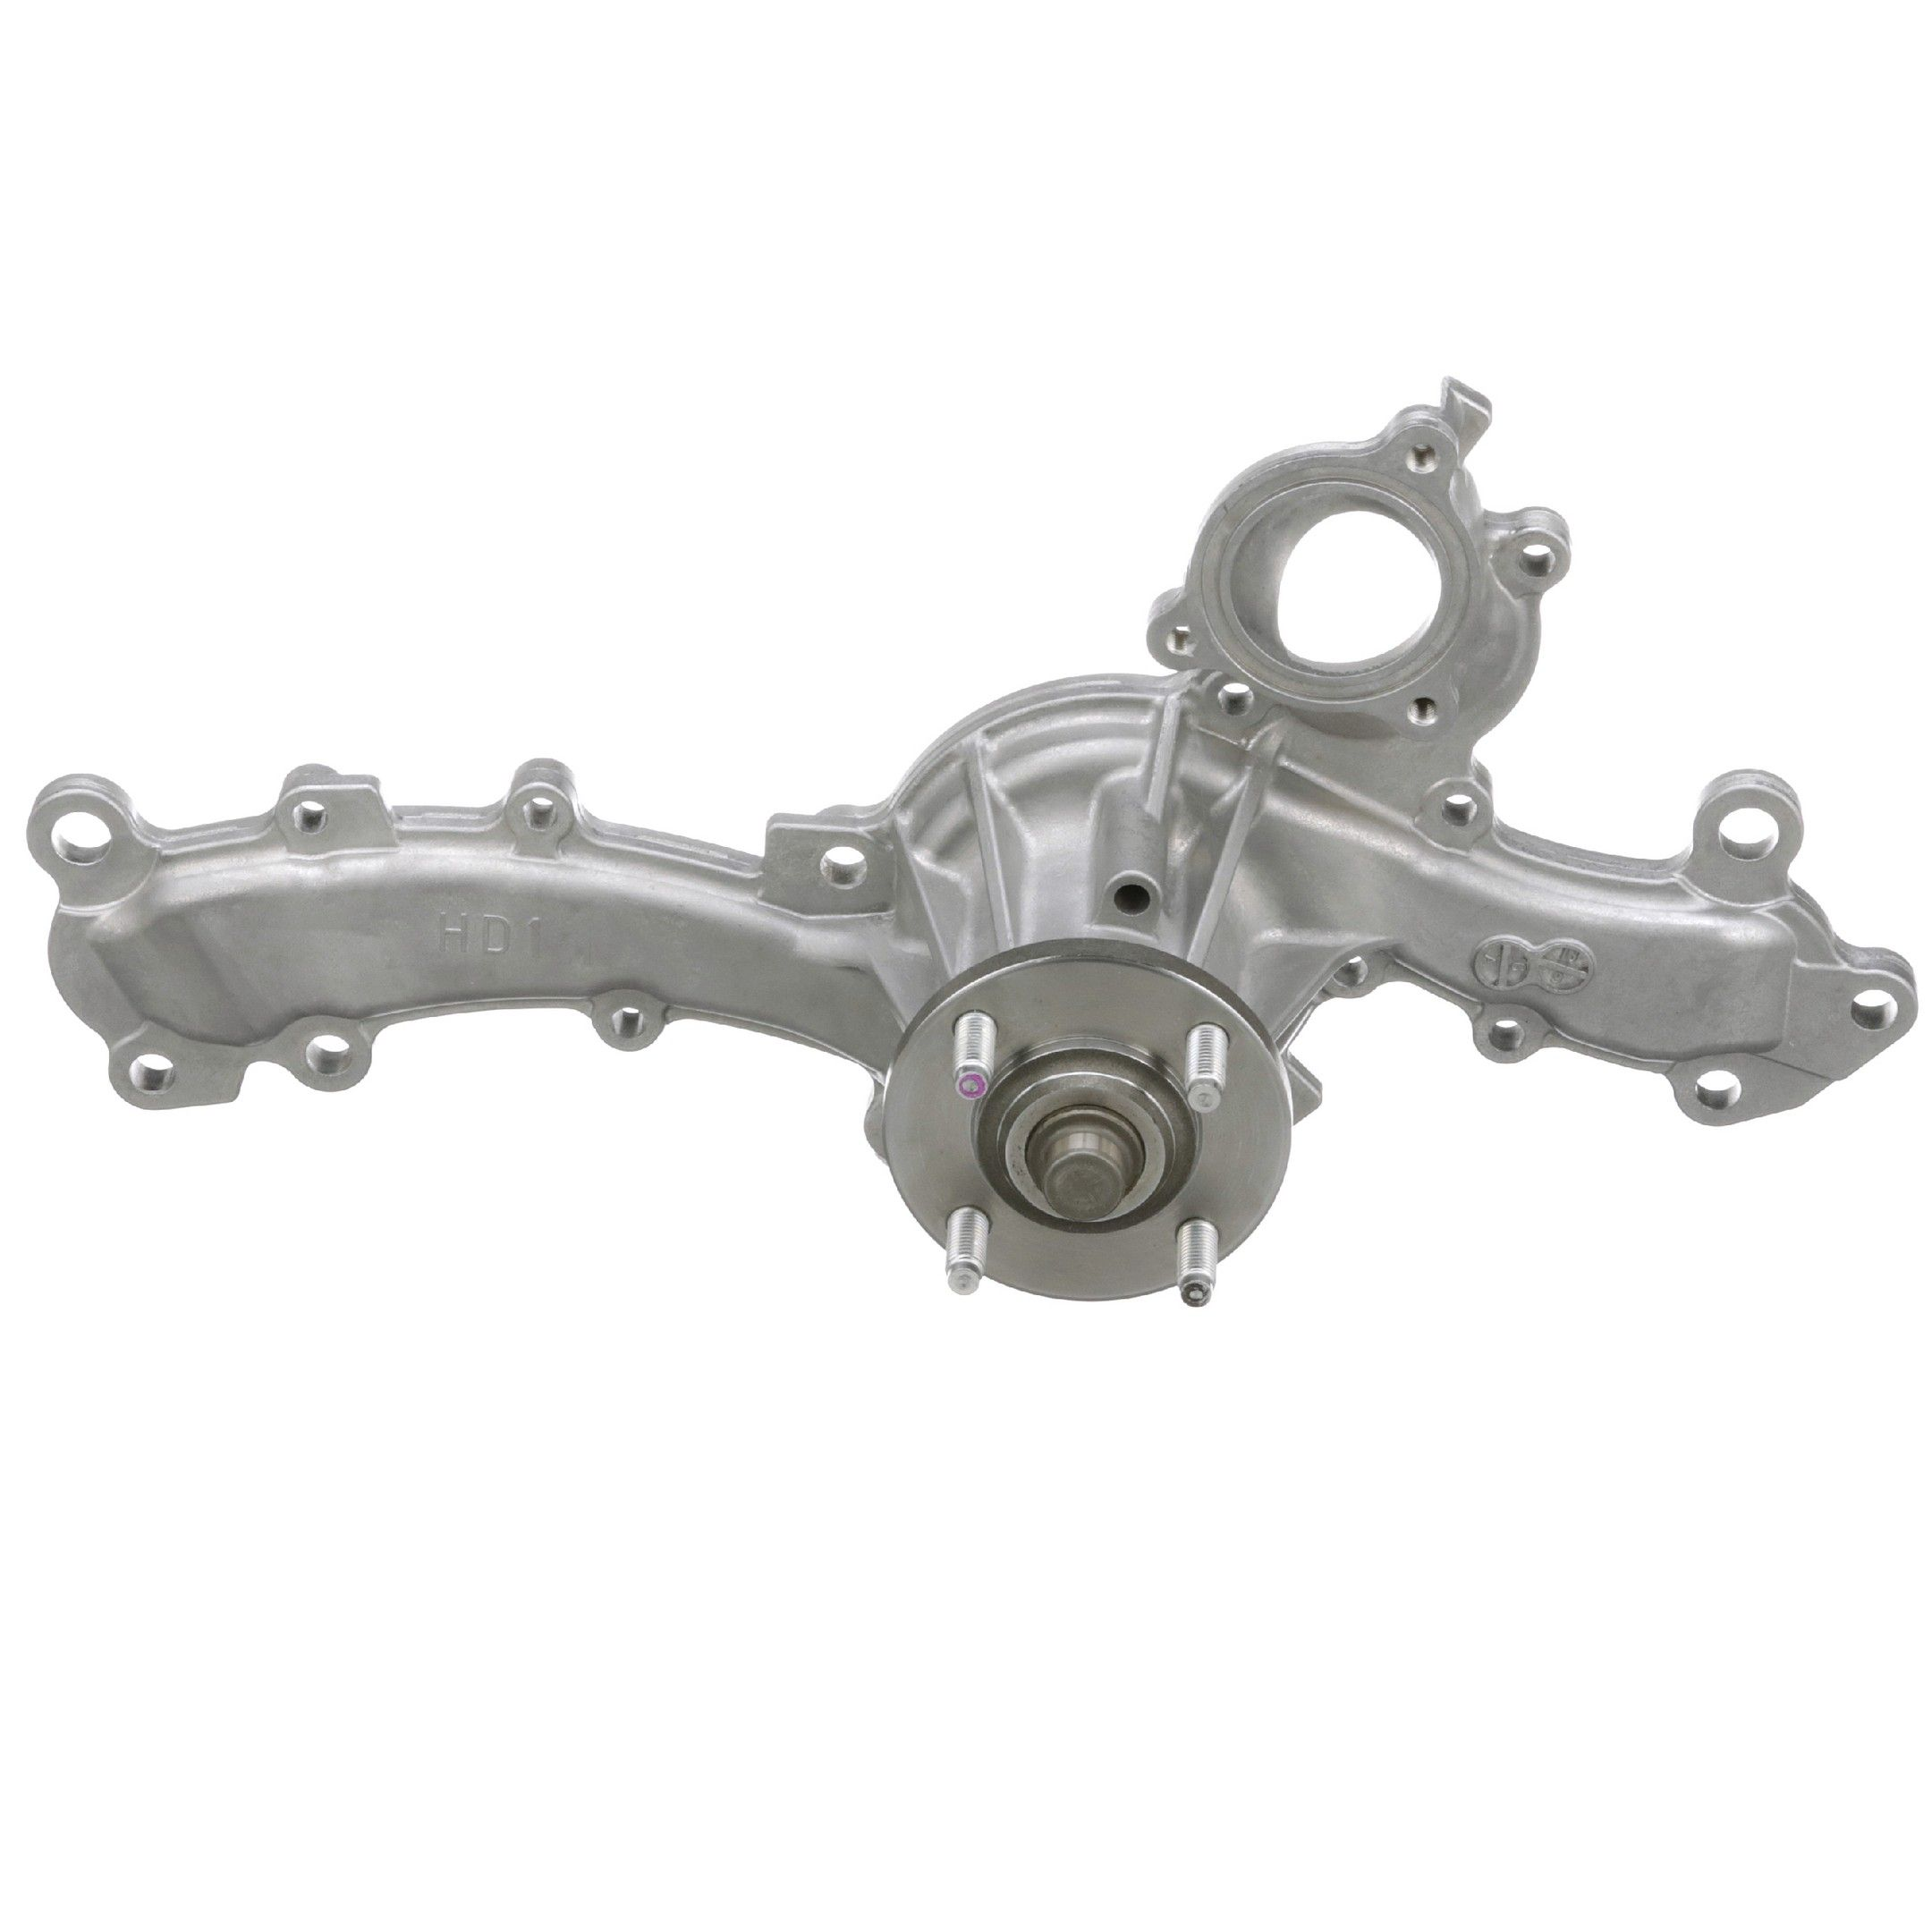 Toyota Fj Cruiser Engine Water Pump Replacement Aisin Airtex Timing Belt 2010 6 Cyl 40l Aw6599